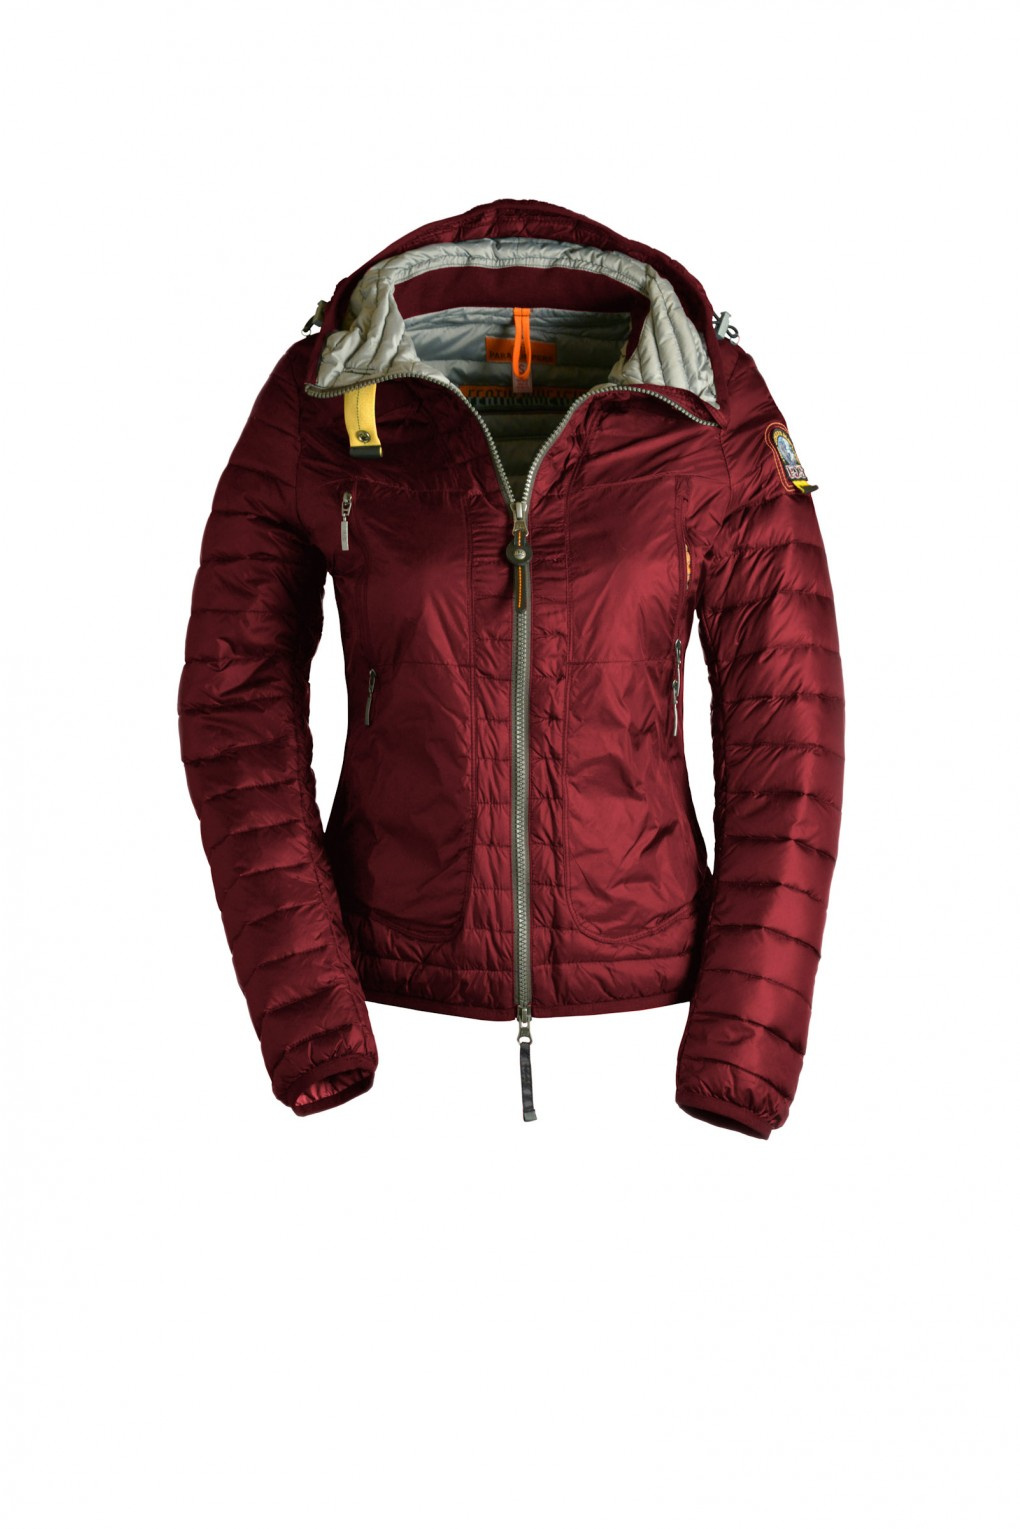 parajumpers VERONICA woman outerwear Red